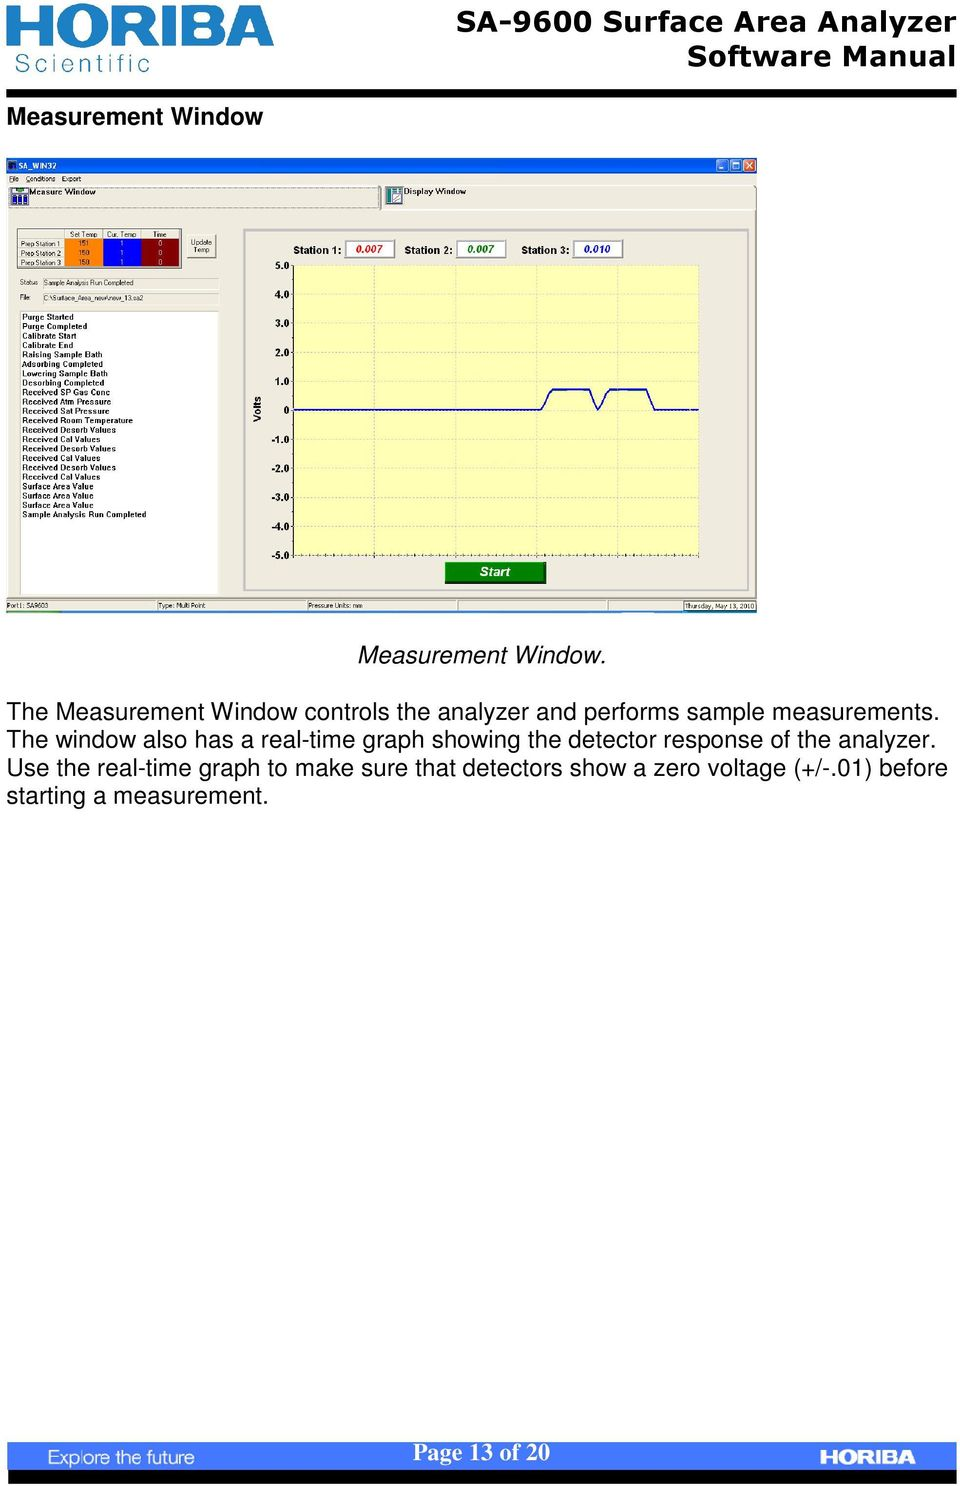 The window also has a real-time graph showing the detector response of the